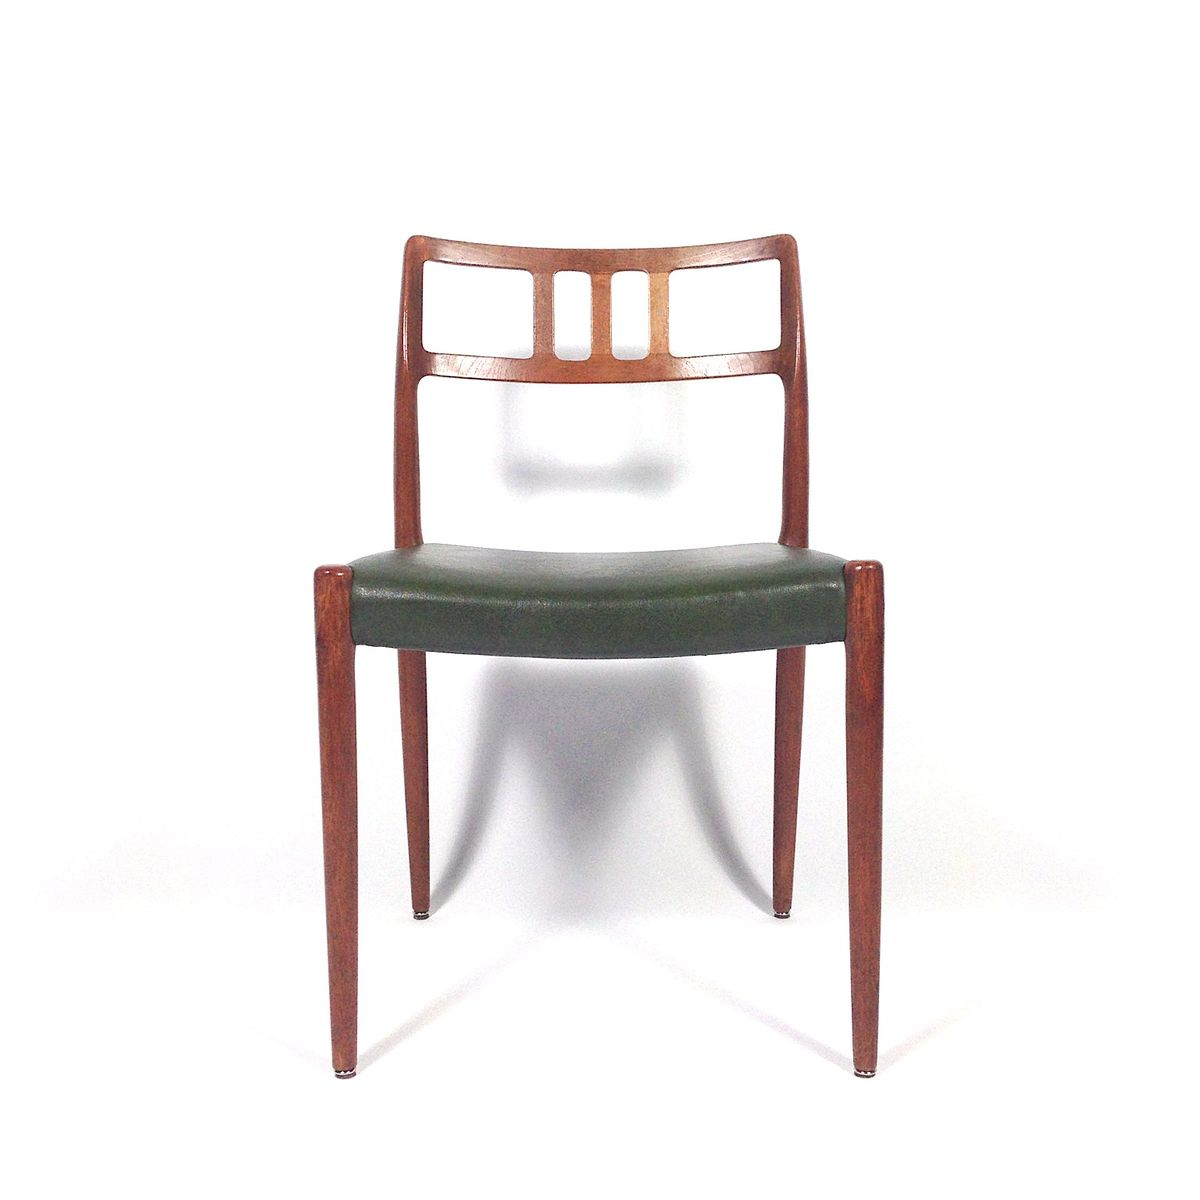 Model 79 Dining Chairs by Niels Otto Moller for JL Moller